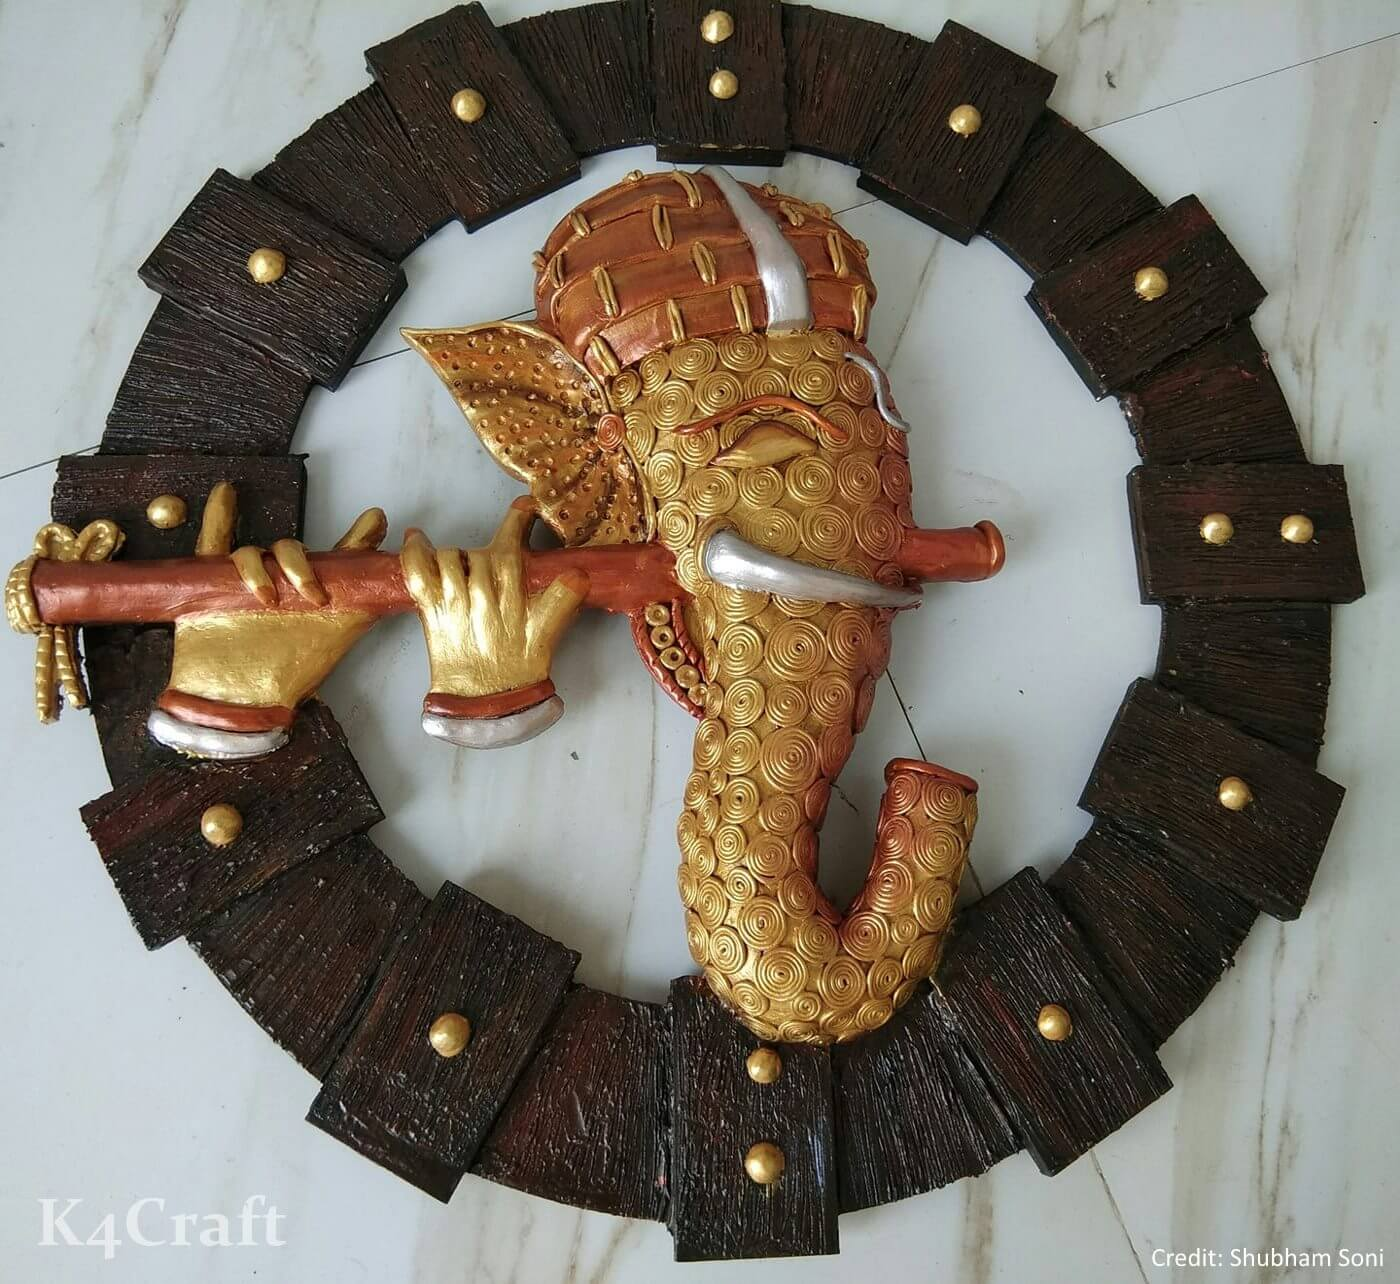 Lord Ganesh sculpture for Home Decor Easy Craft Ideas To Celebrate Ganesh Chaturthi with Kids